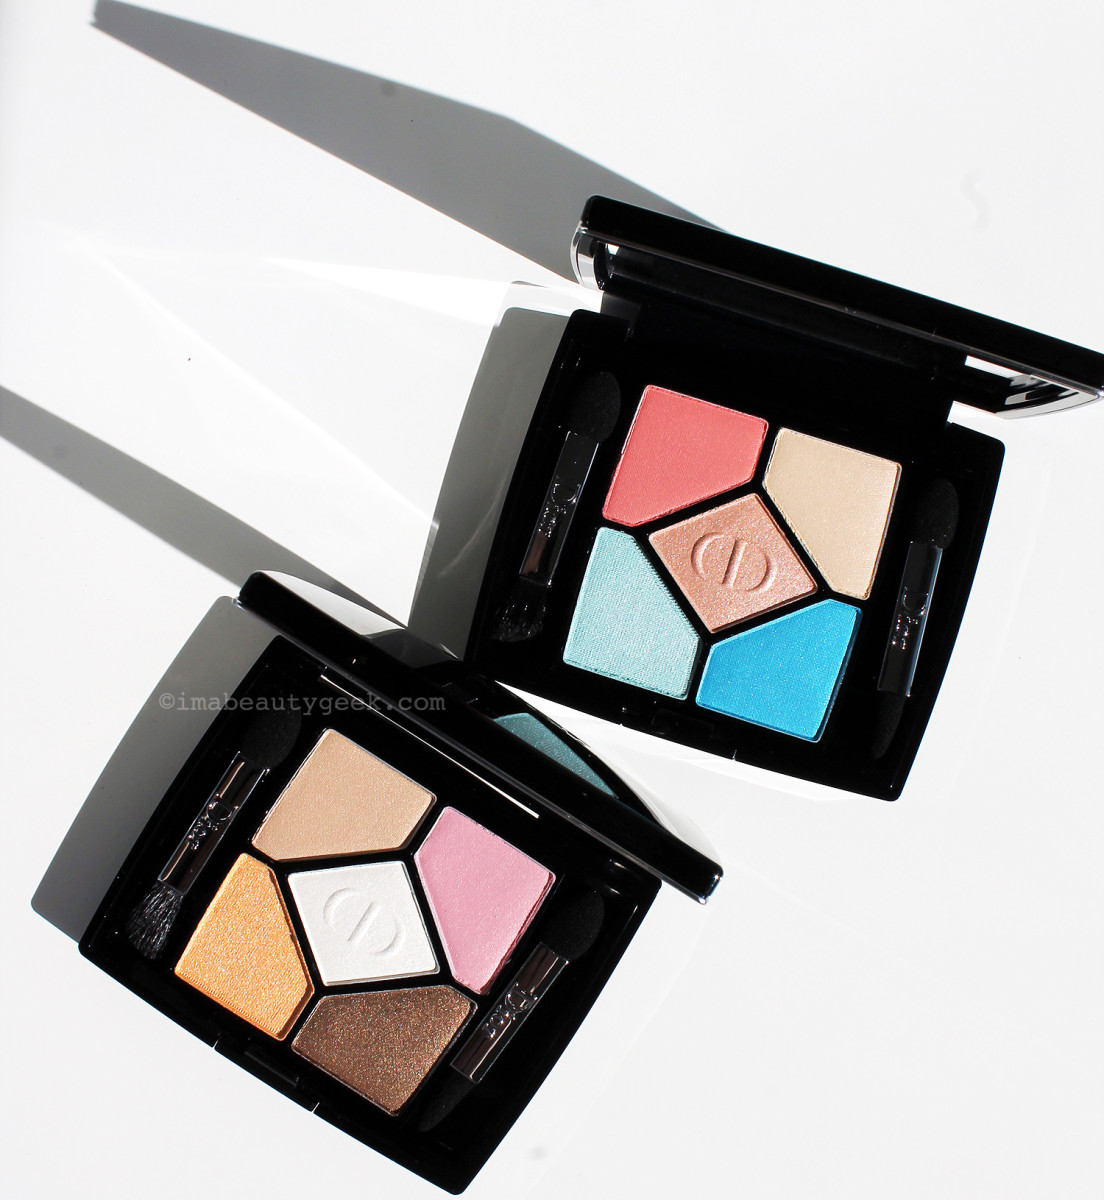 Dior 5-Colour Eyeshadow palettes in 366 Bain de Mer (top) and 536 Escapade